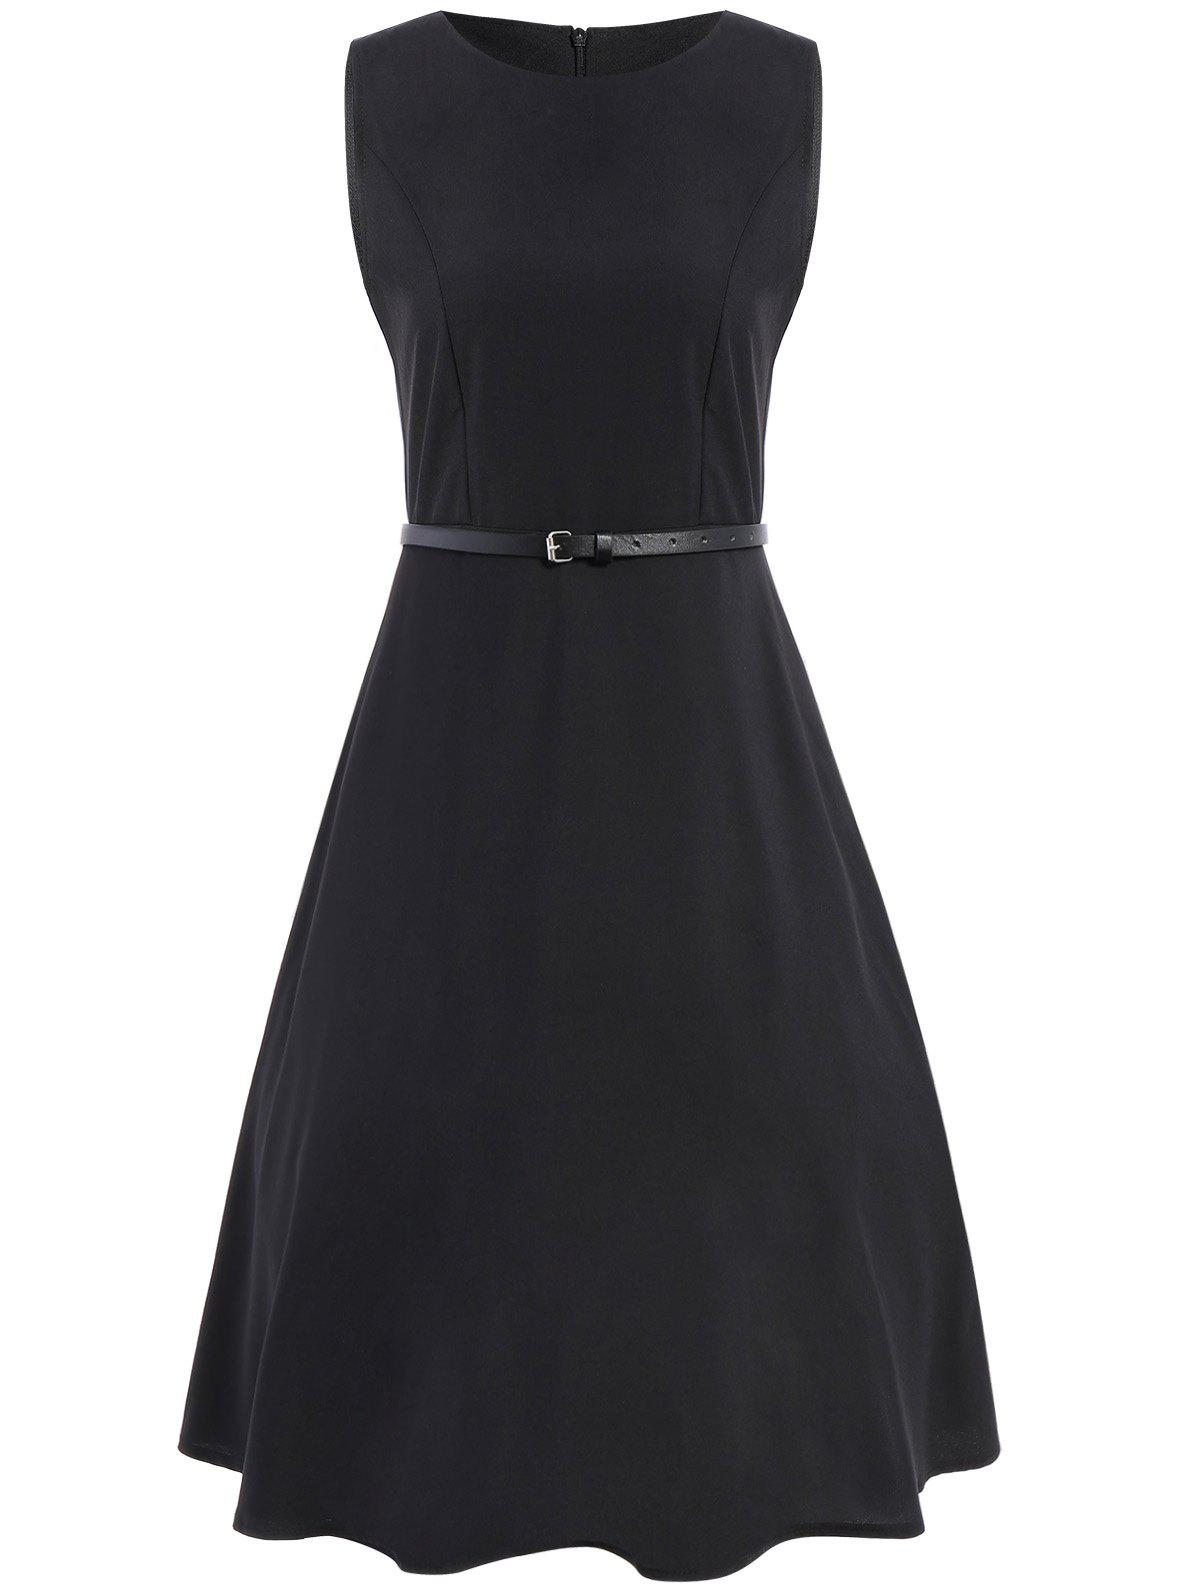 Sleeveless Midi Swing Dress With BeltWomen<br><br><br>Size: 2XL<br>Color: BLACK